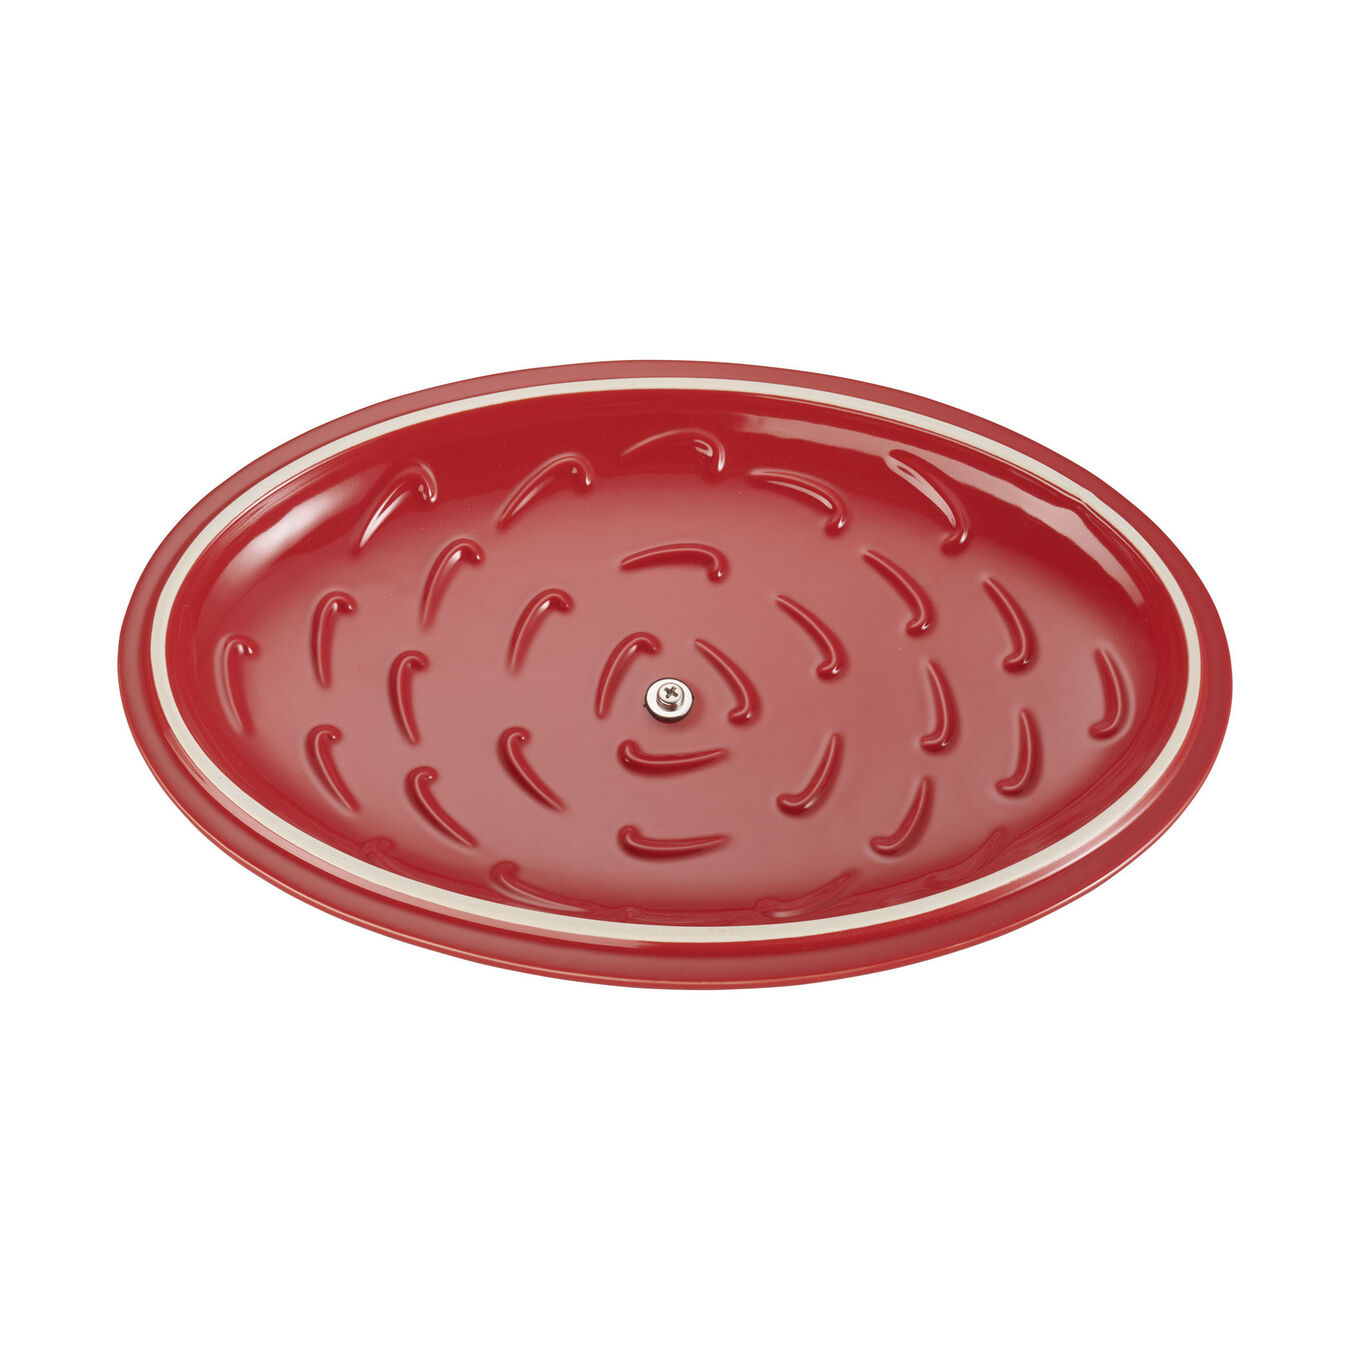 14-inch Oval Covered Baking Dish - Cherry,,large 5